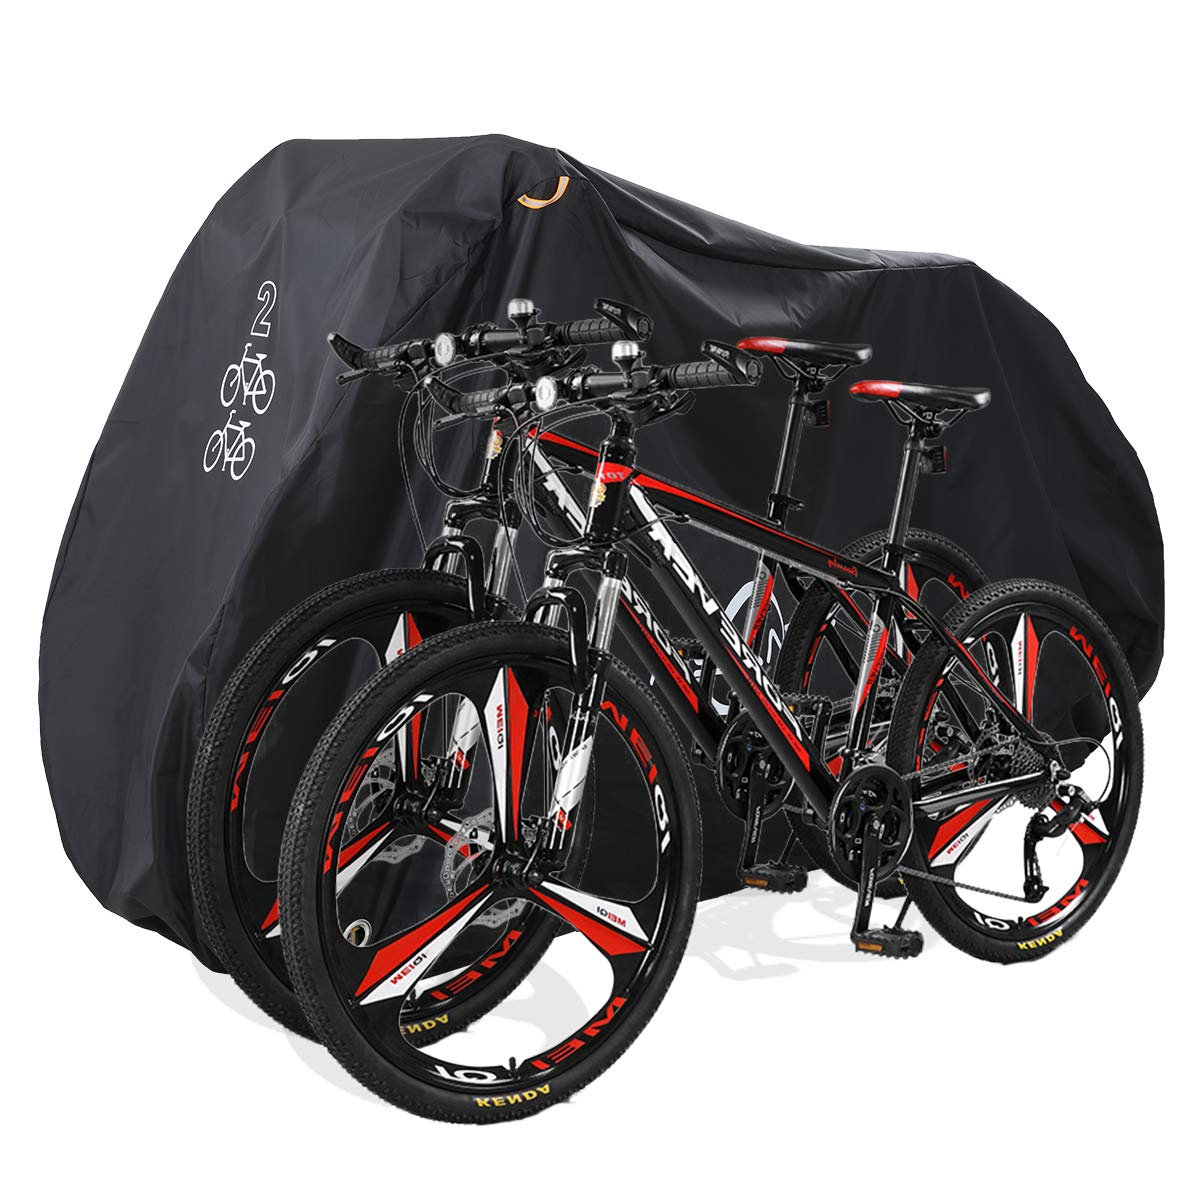 Aiskaer Black Bicycle Cover with Lock Hole Reflective Safety Loops for 29er Mountain Road Electric Bike Motorcycle Cruiser Outdoor Storage, Waterproof, Anti-UV, Heavy Duty Ripstop Material 210D by Aiskaer